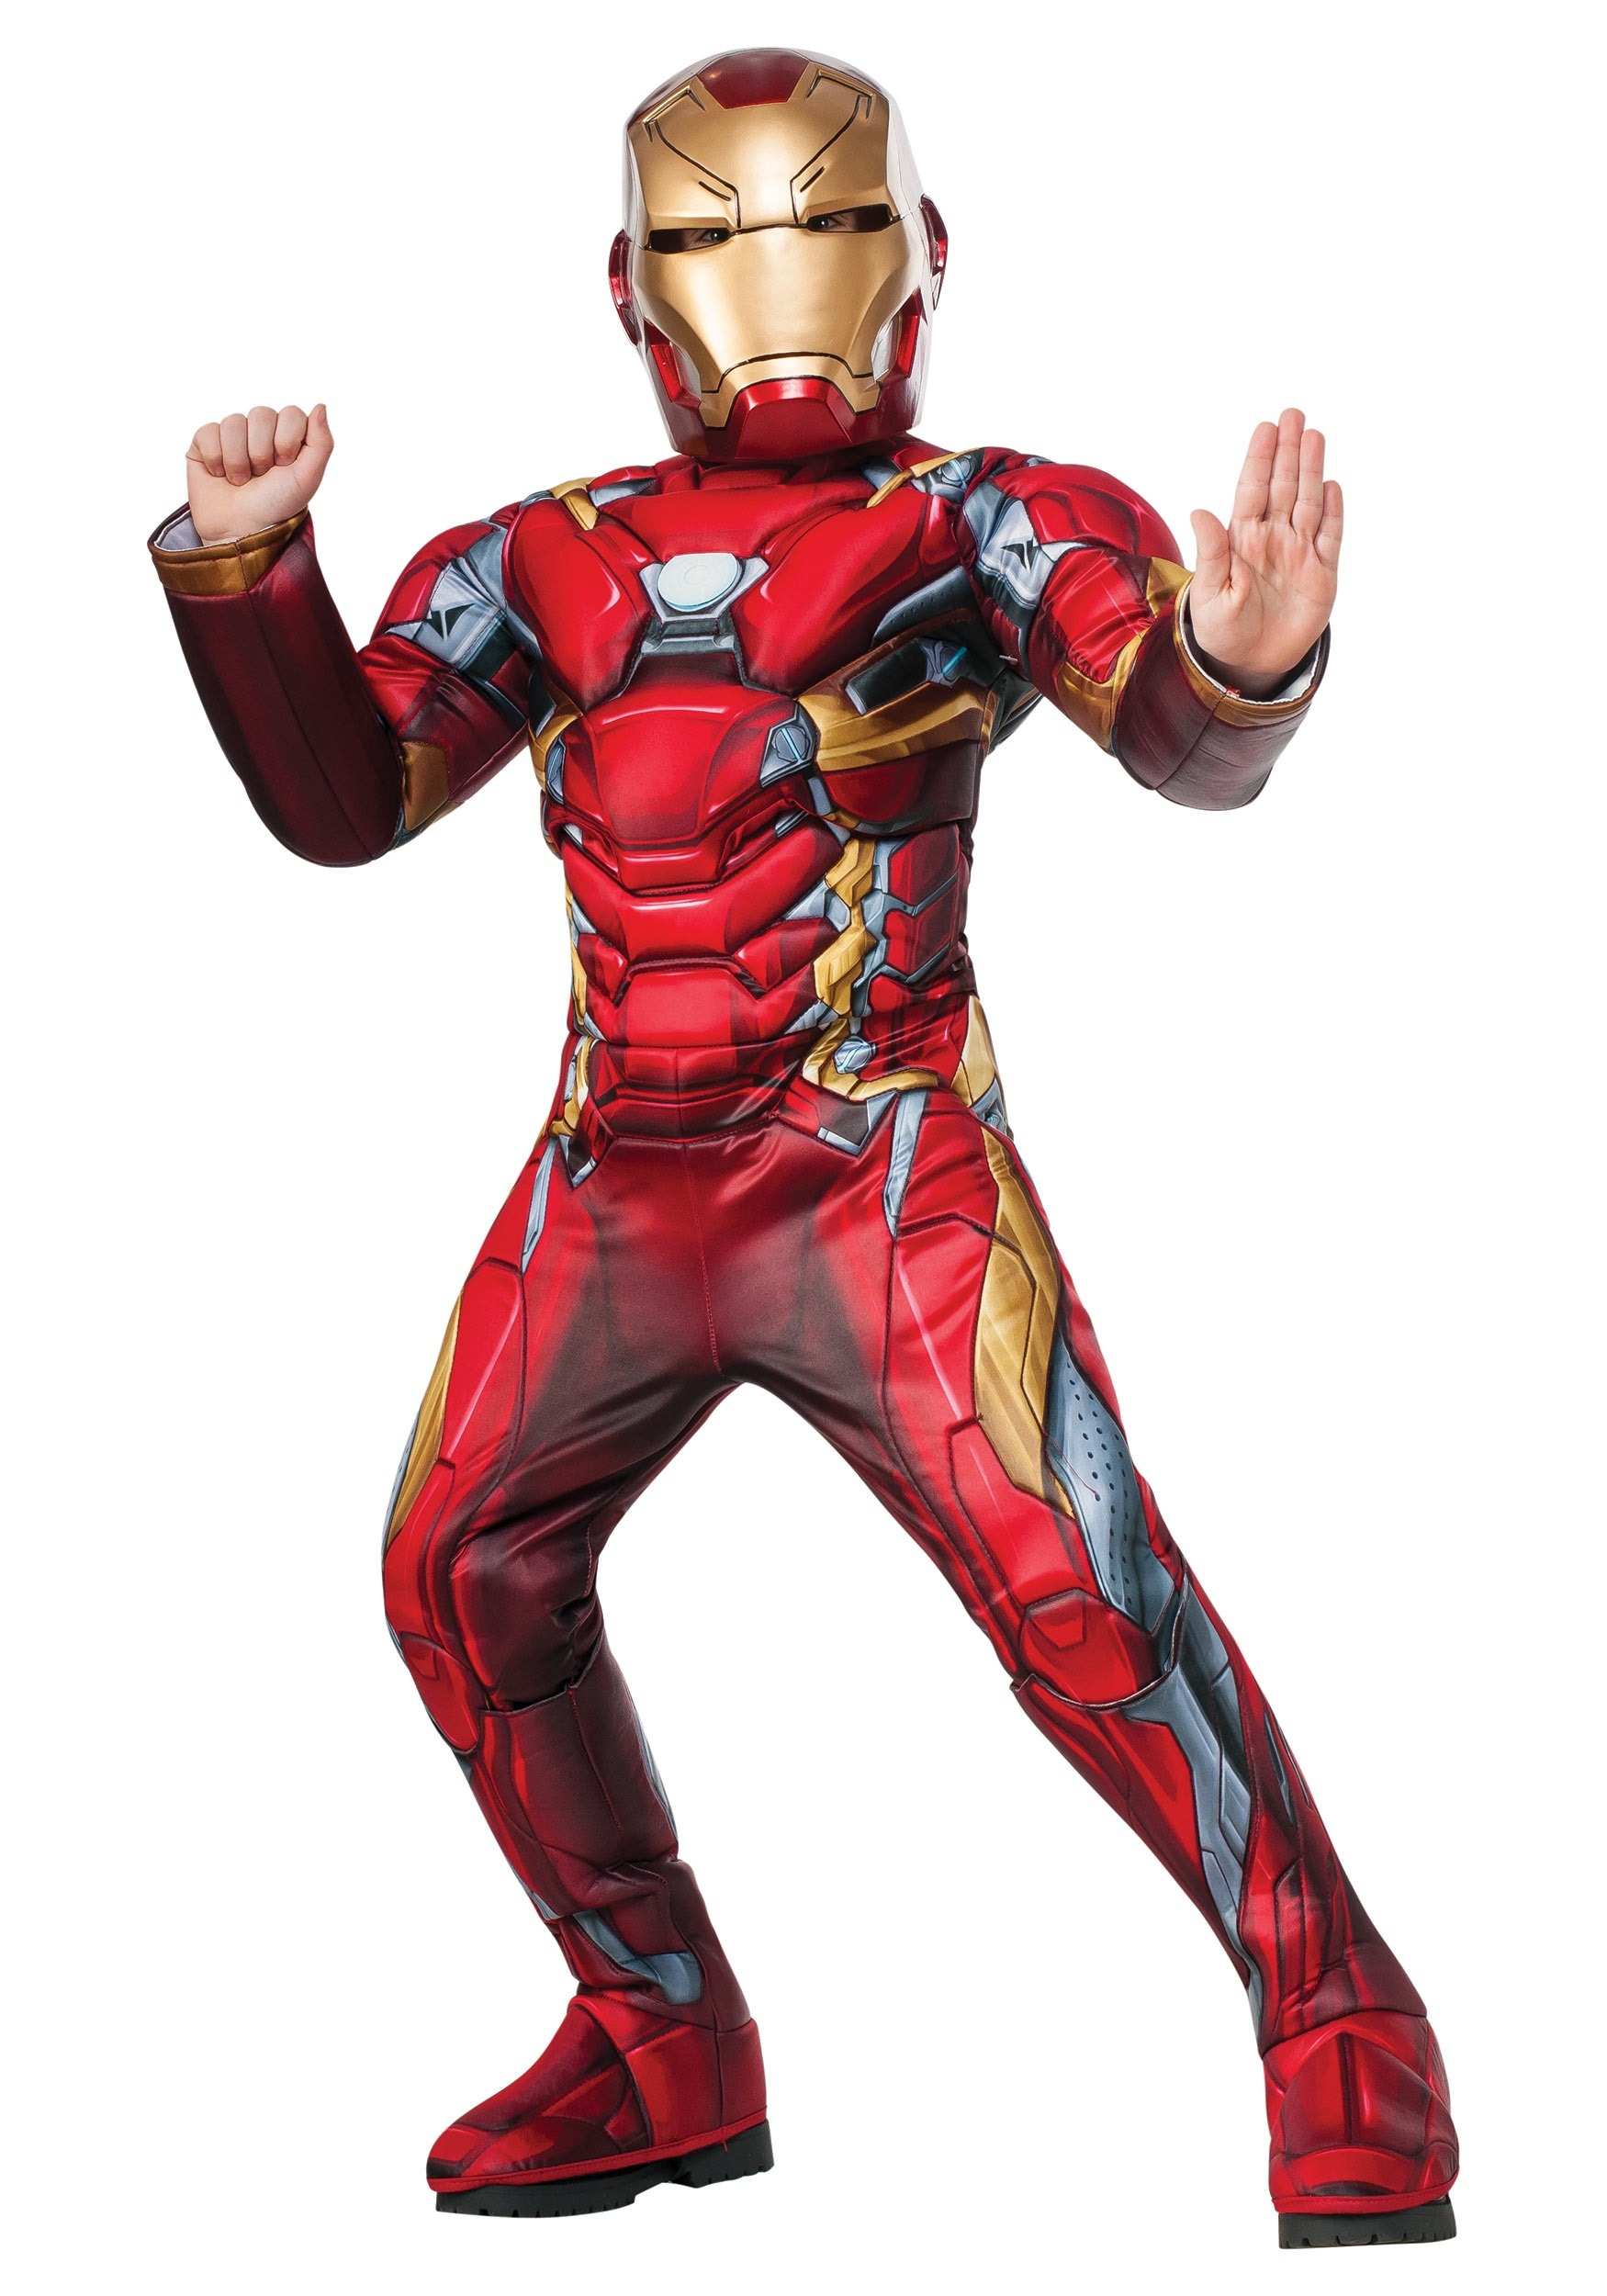 Boys Elite Iron Man Civil War Costume RU620755